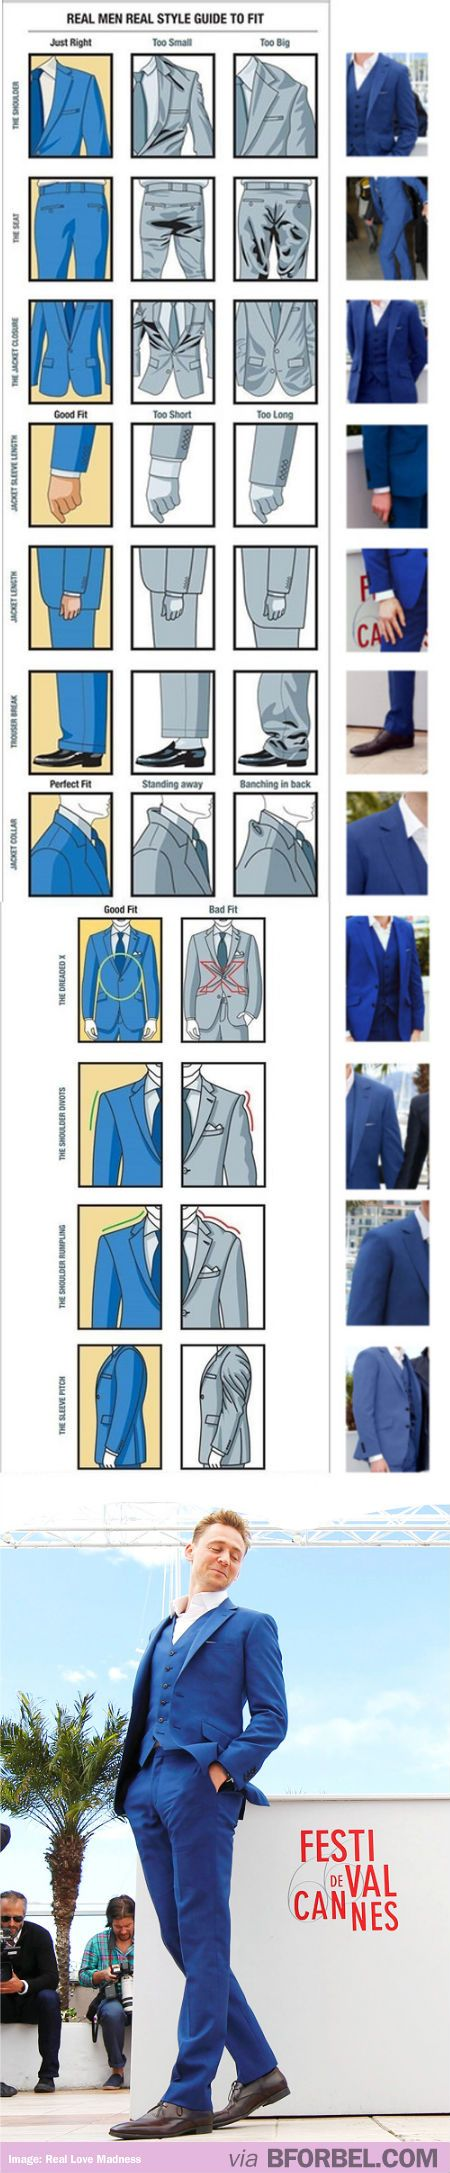 The Men's Guide To Suits… Not Too Loose, Not Too Tight.